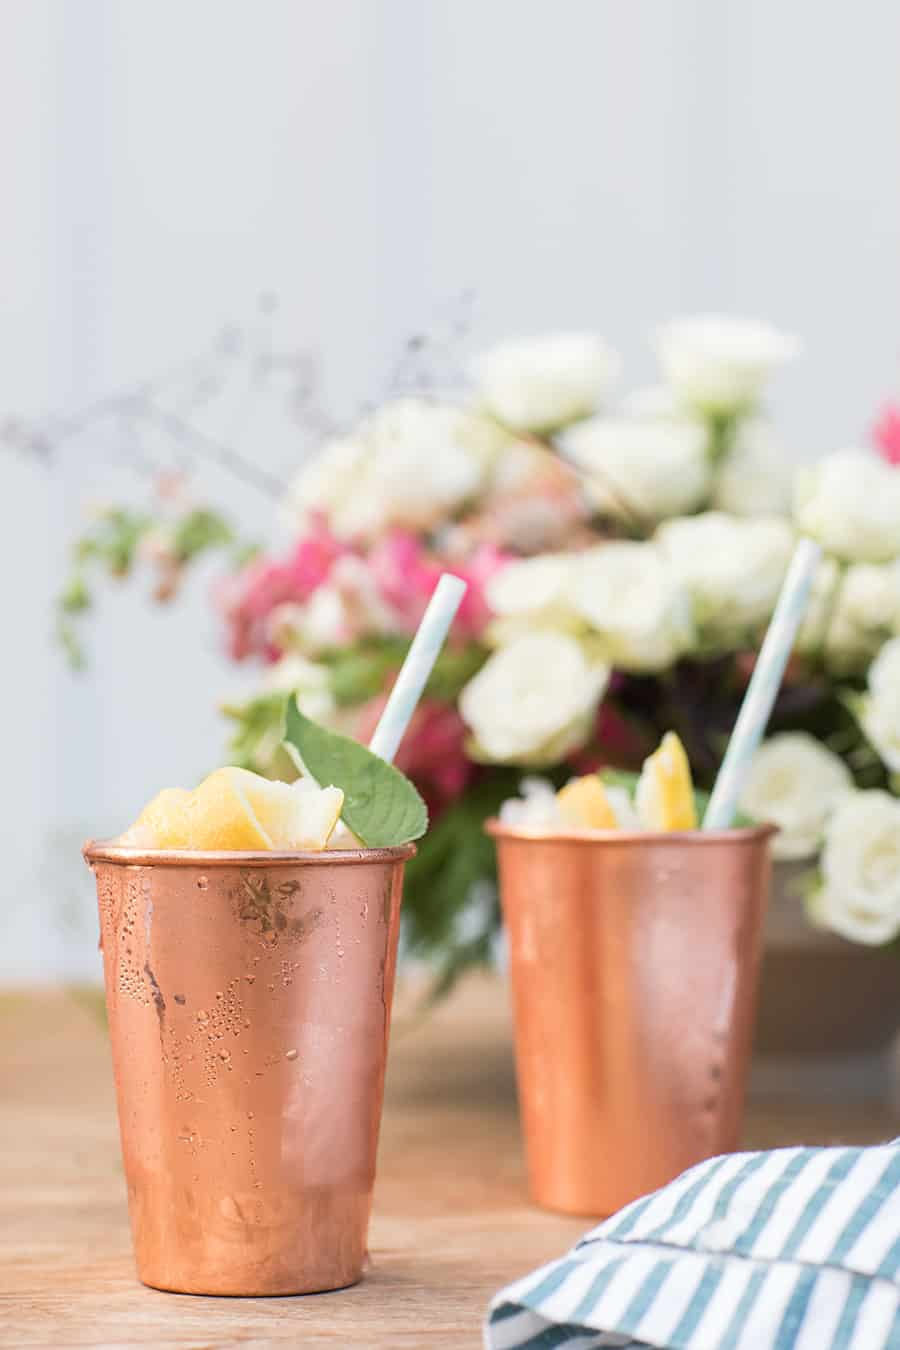 Lemon and Sage Moscow Mules